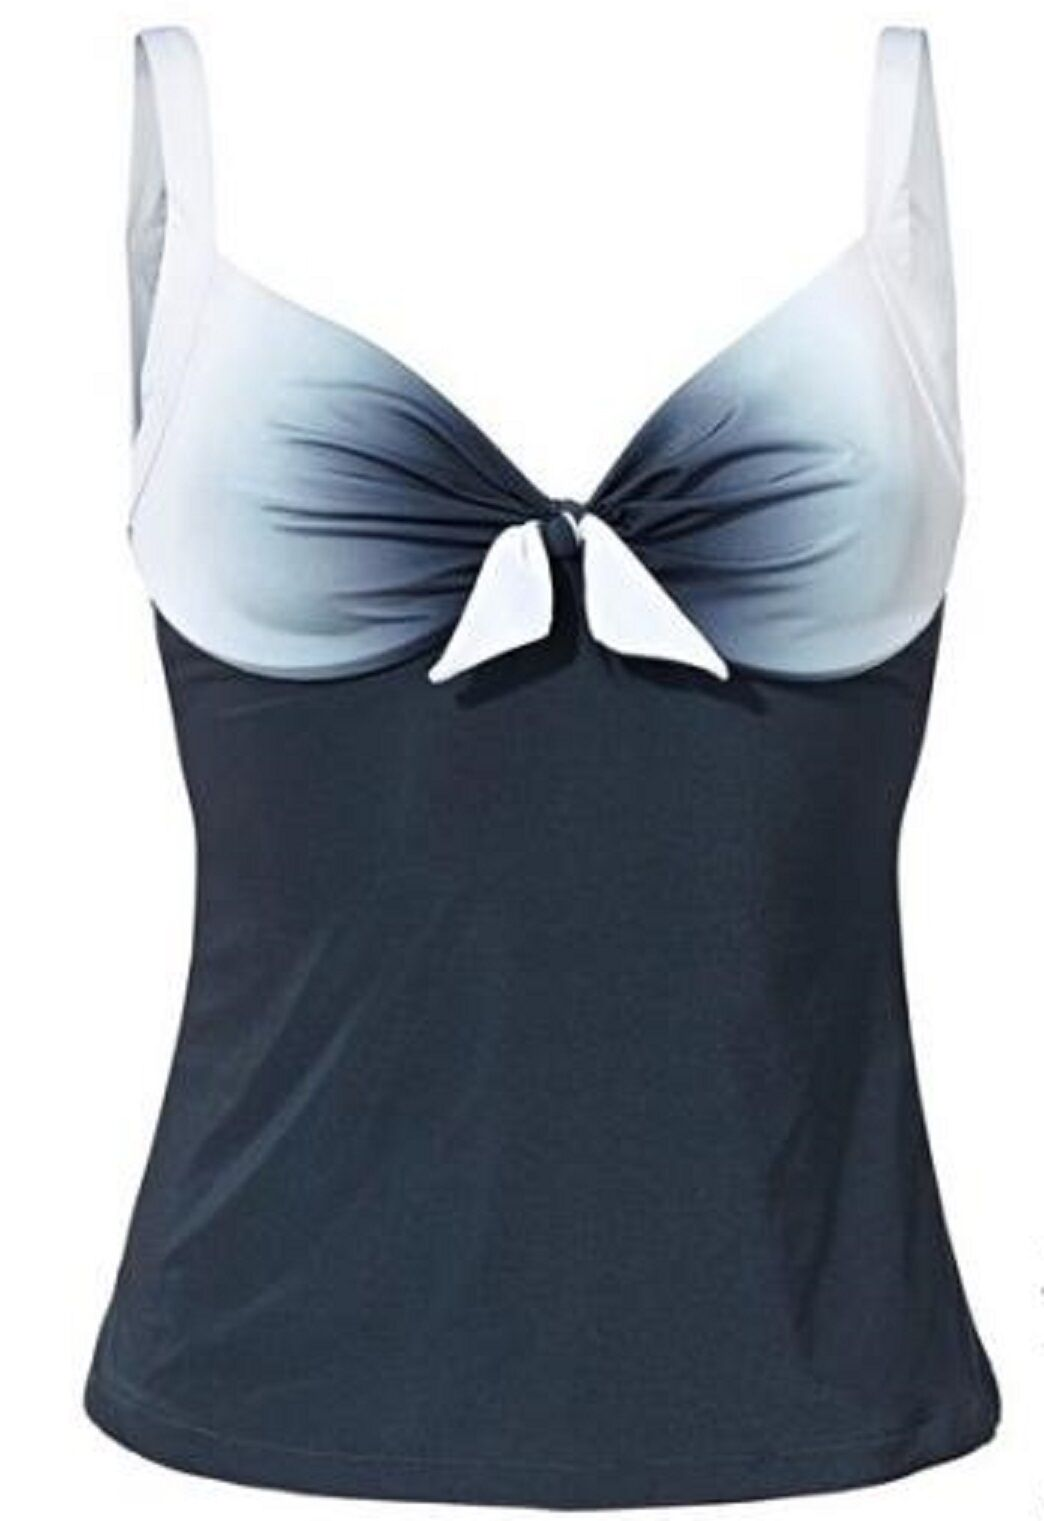 Heine Trendy Tankini Top Size 42 - 46 Cup D (603) New